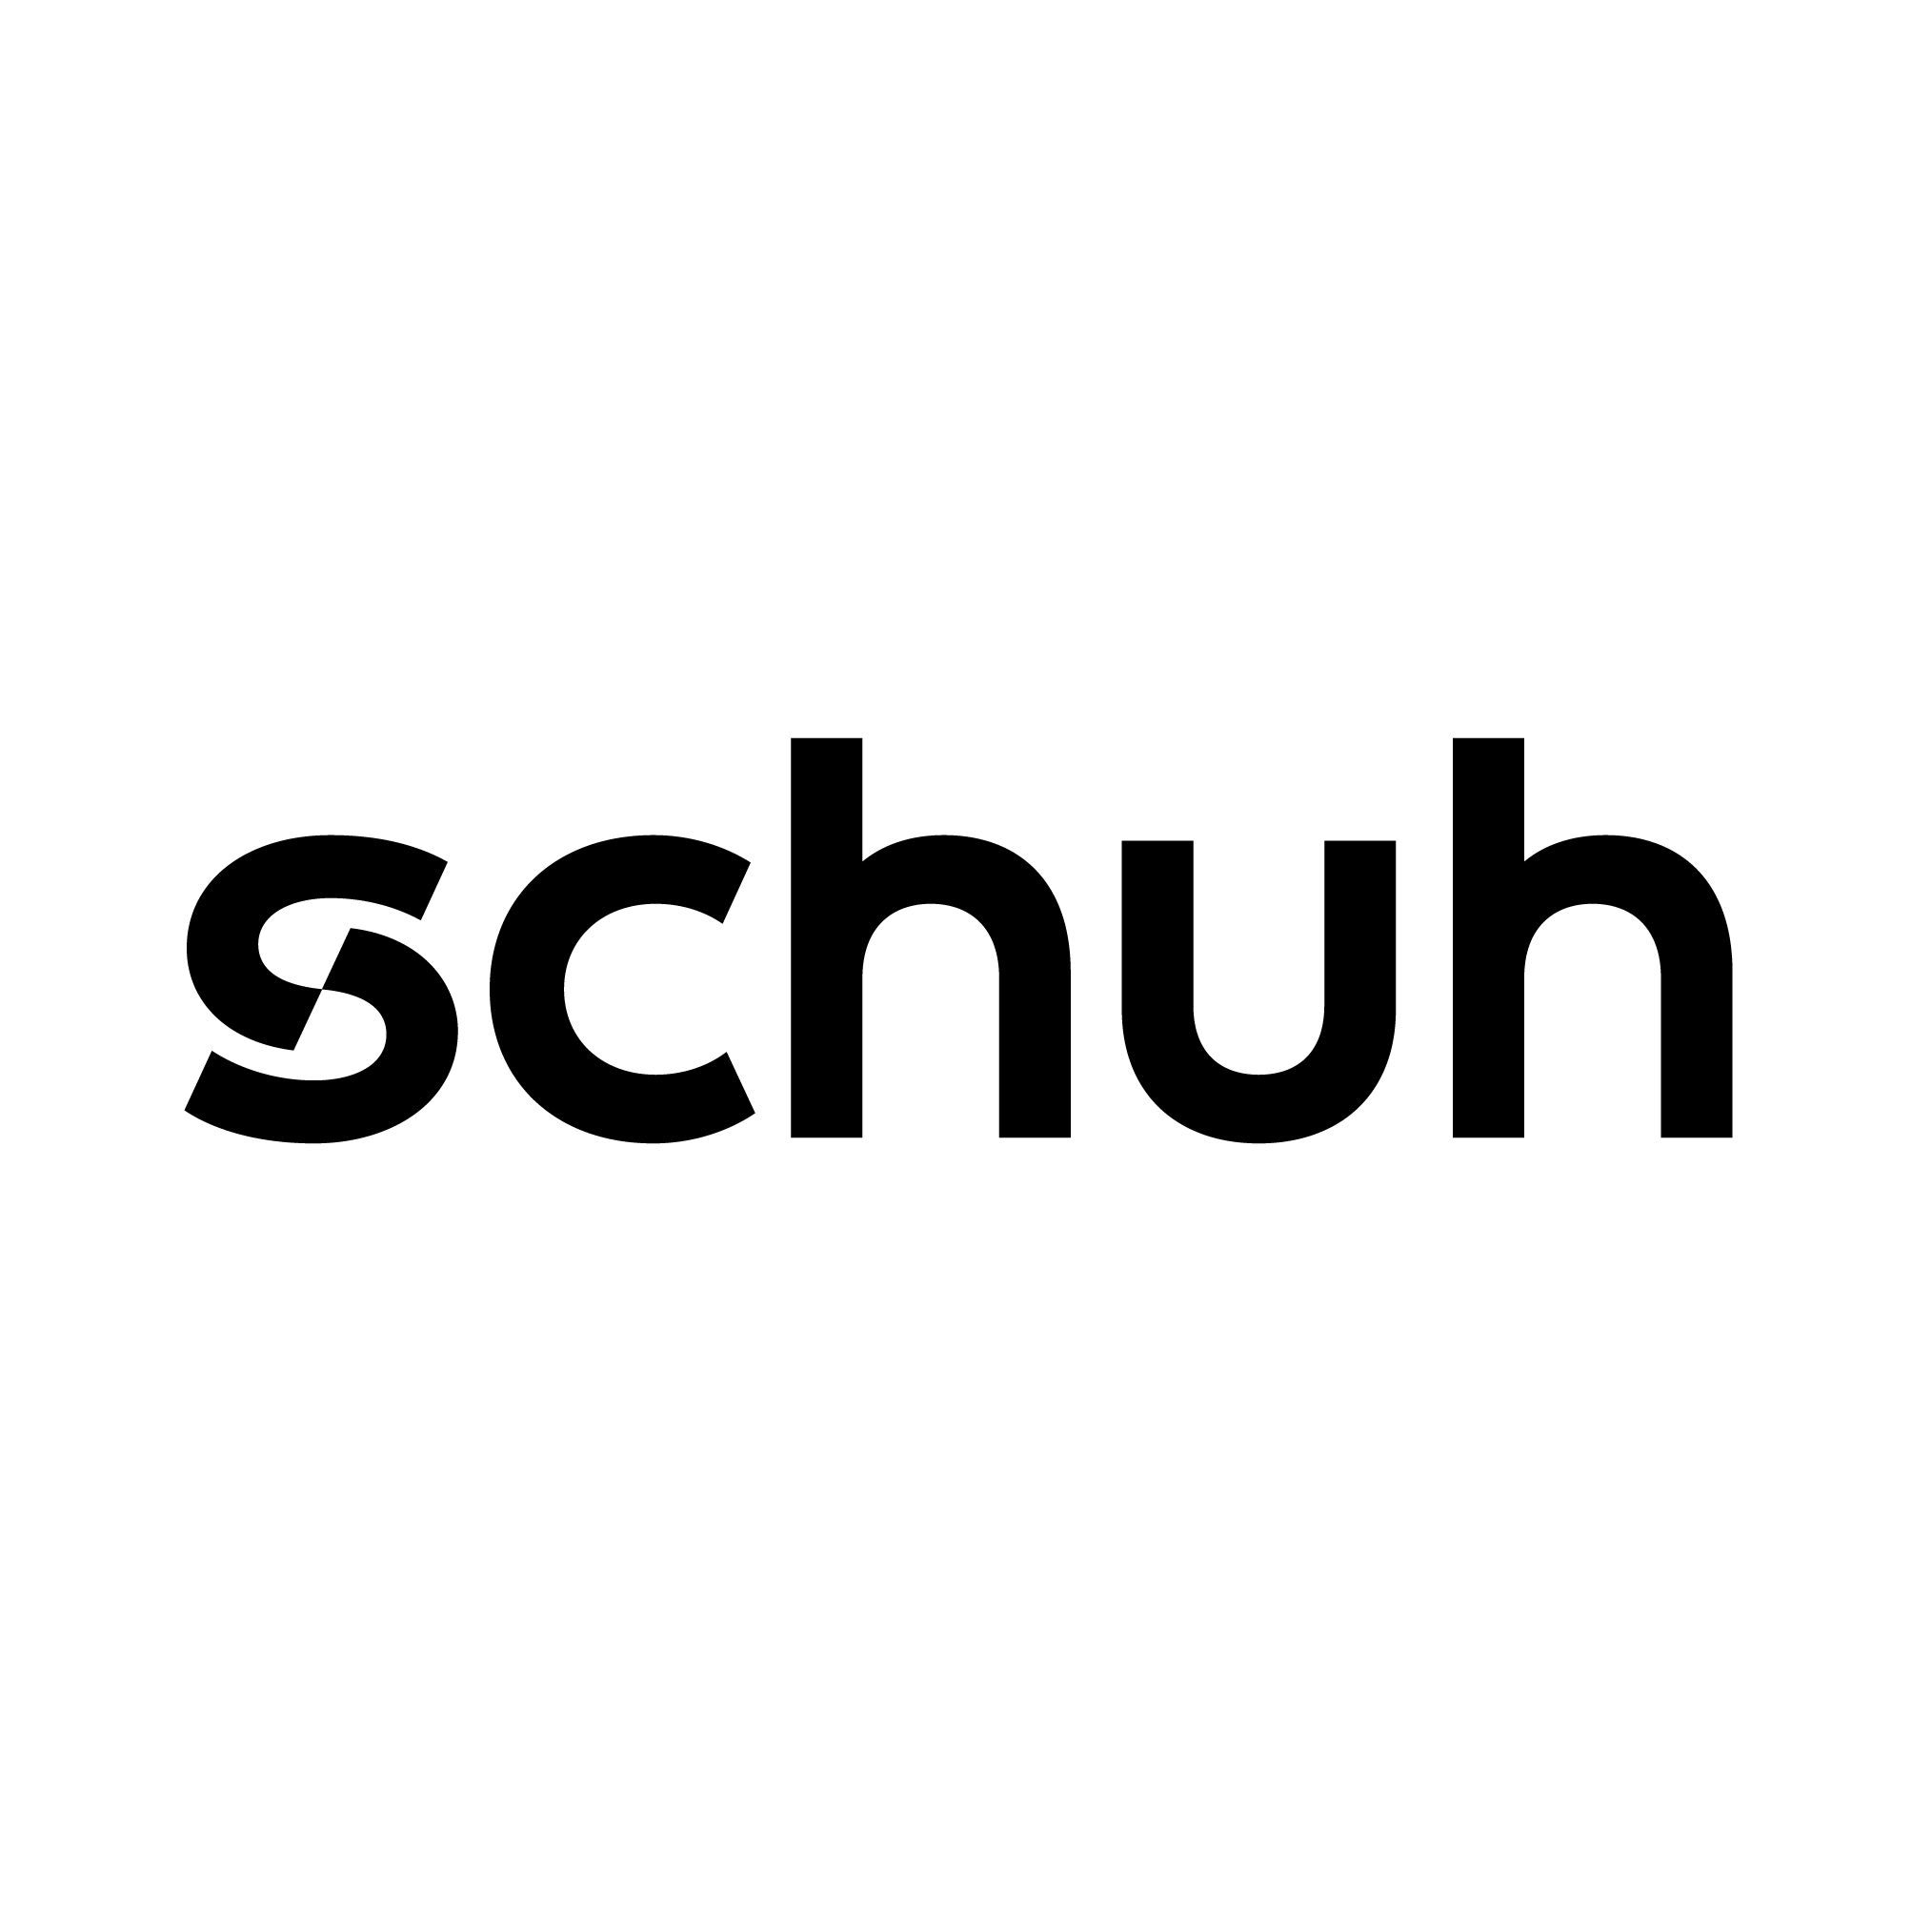 schuh Kids - Belfast, County Antrim BT1 1DD - 02895 609726 | ShowMeLocal.com